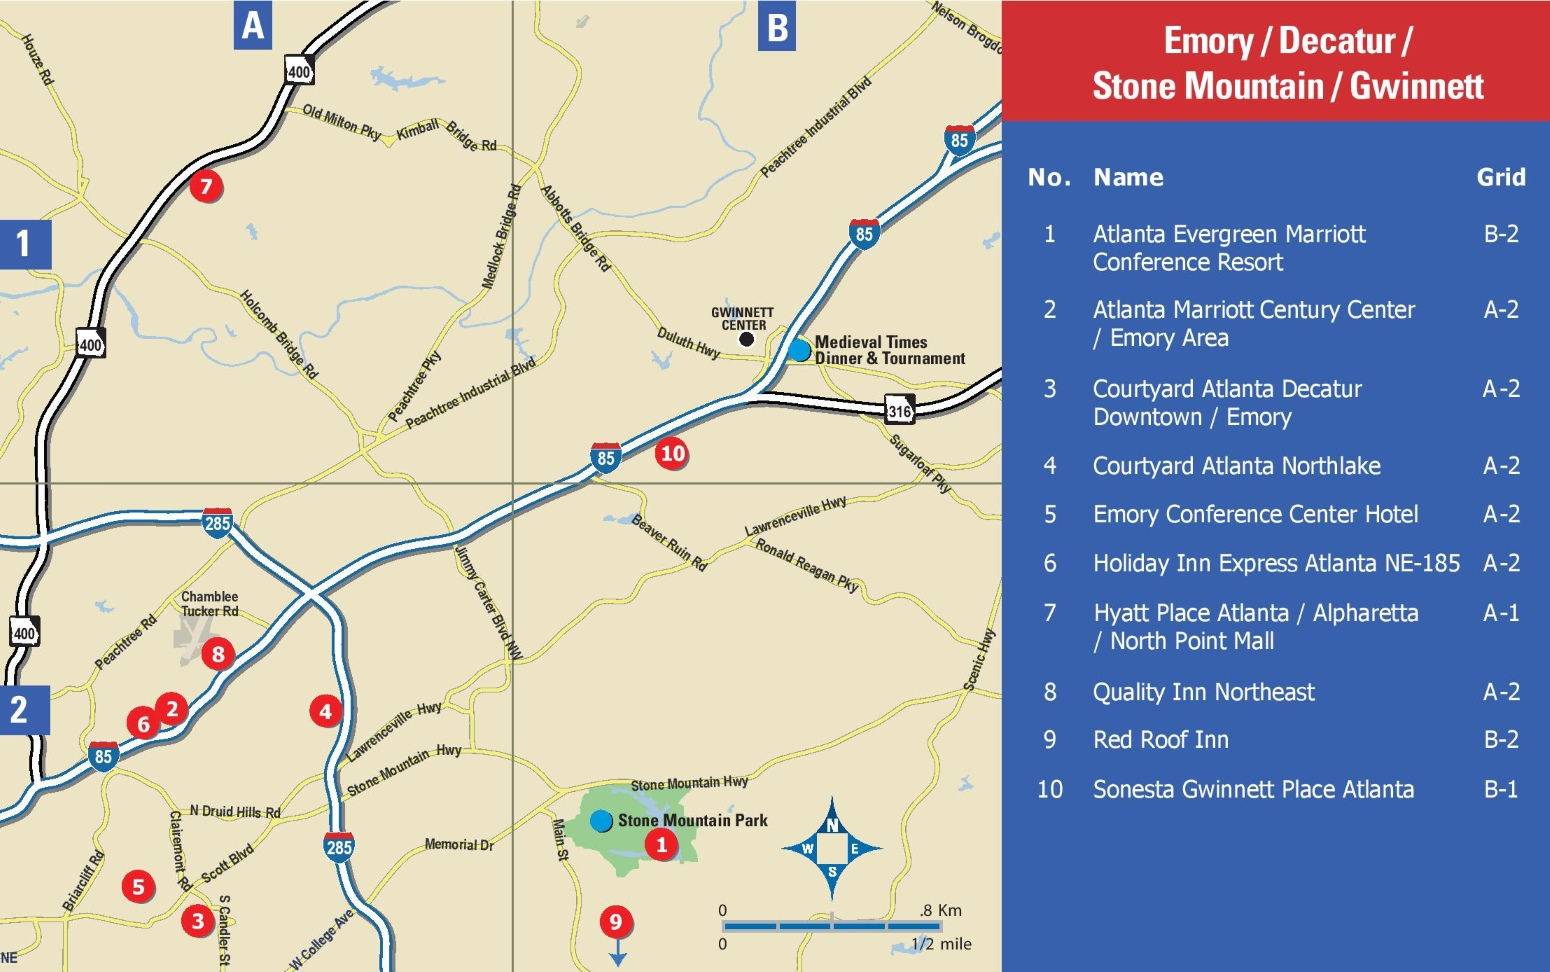 Emory Decatur Stone Mountain and Gwinnett hotel map